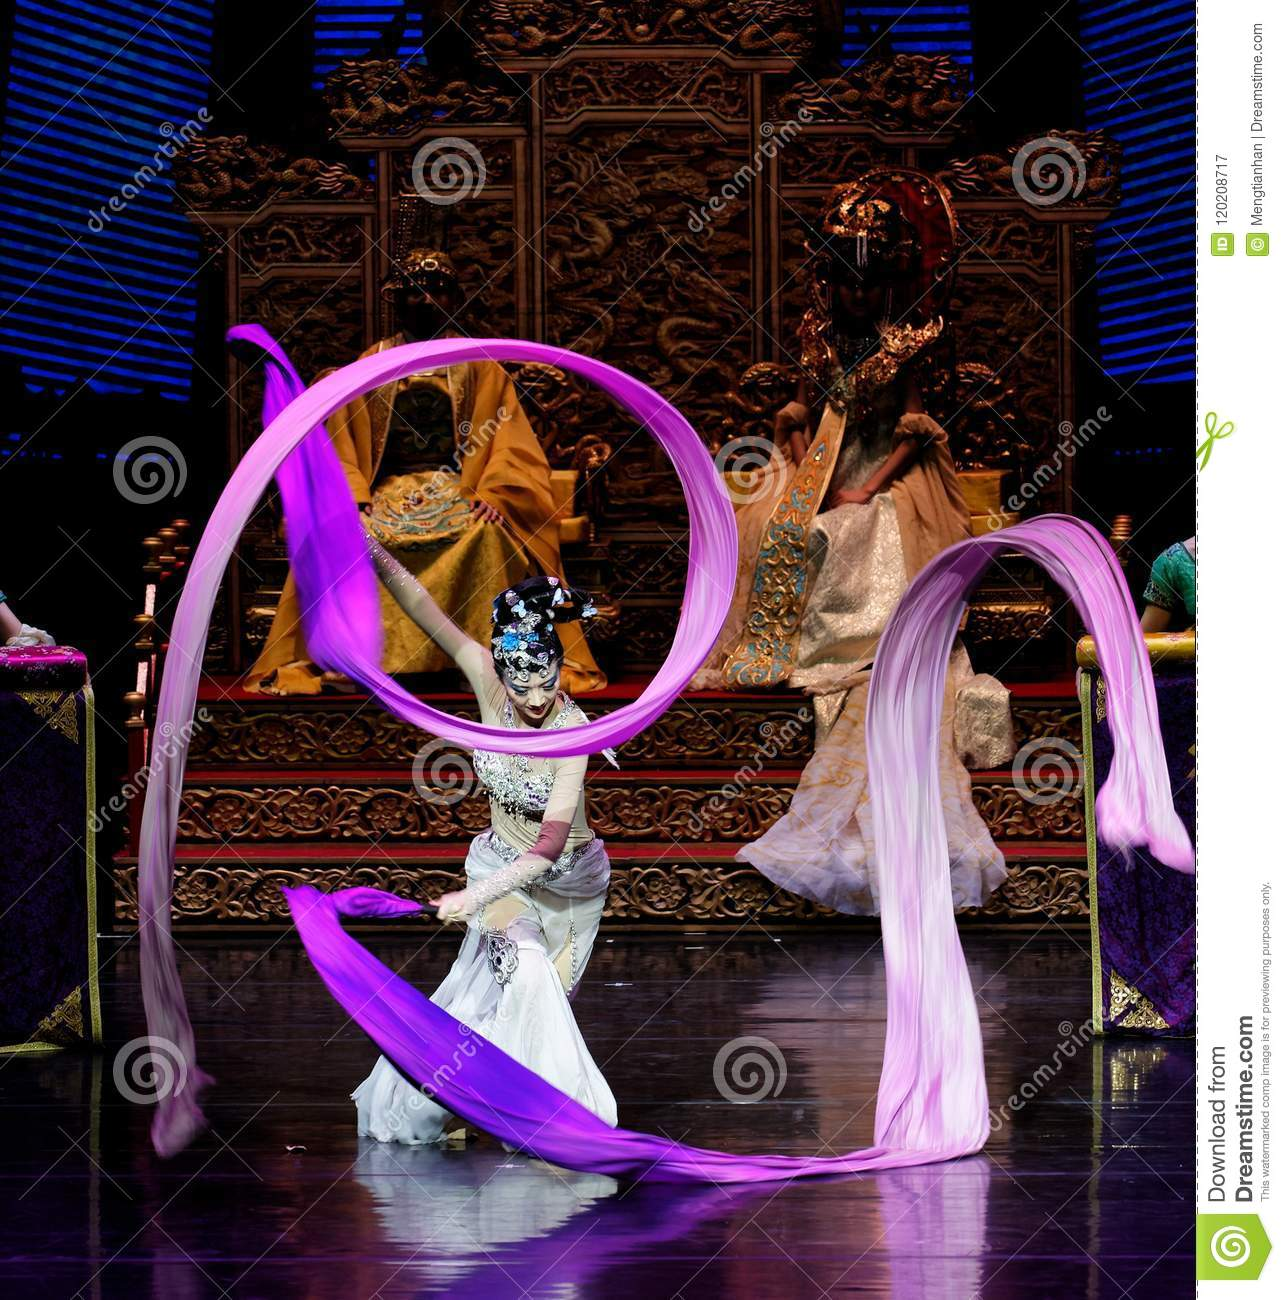 Long Silk Dance-The Second Act: A Feast In The Palace-Epic Dance